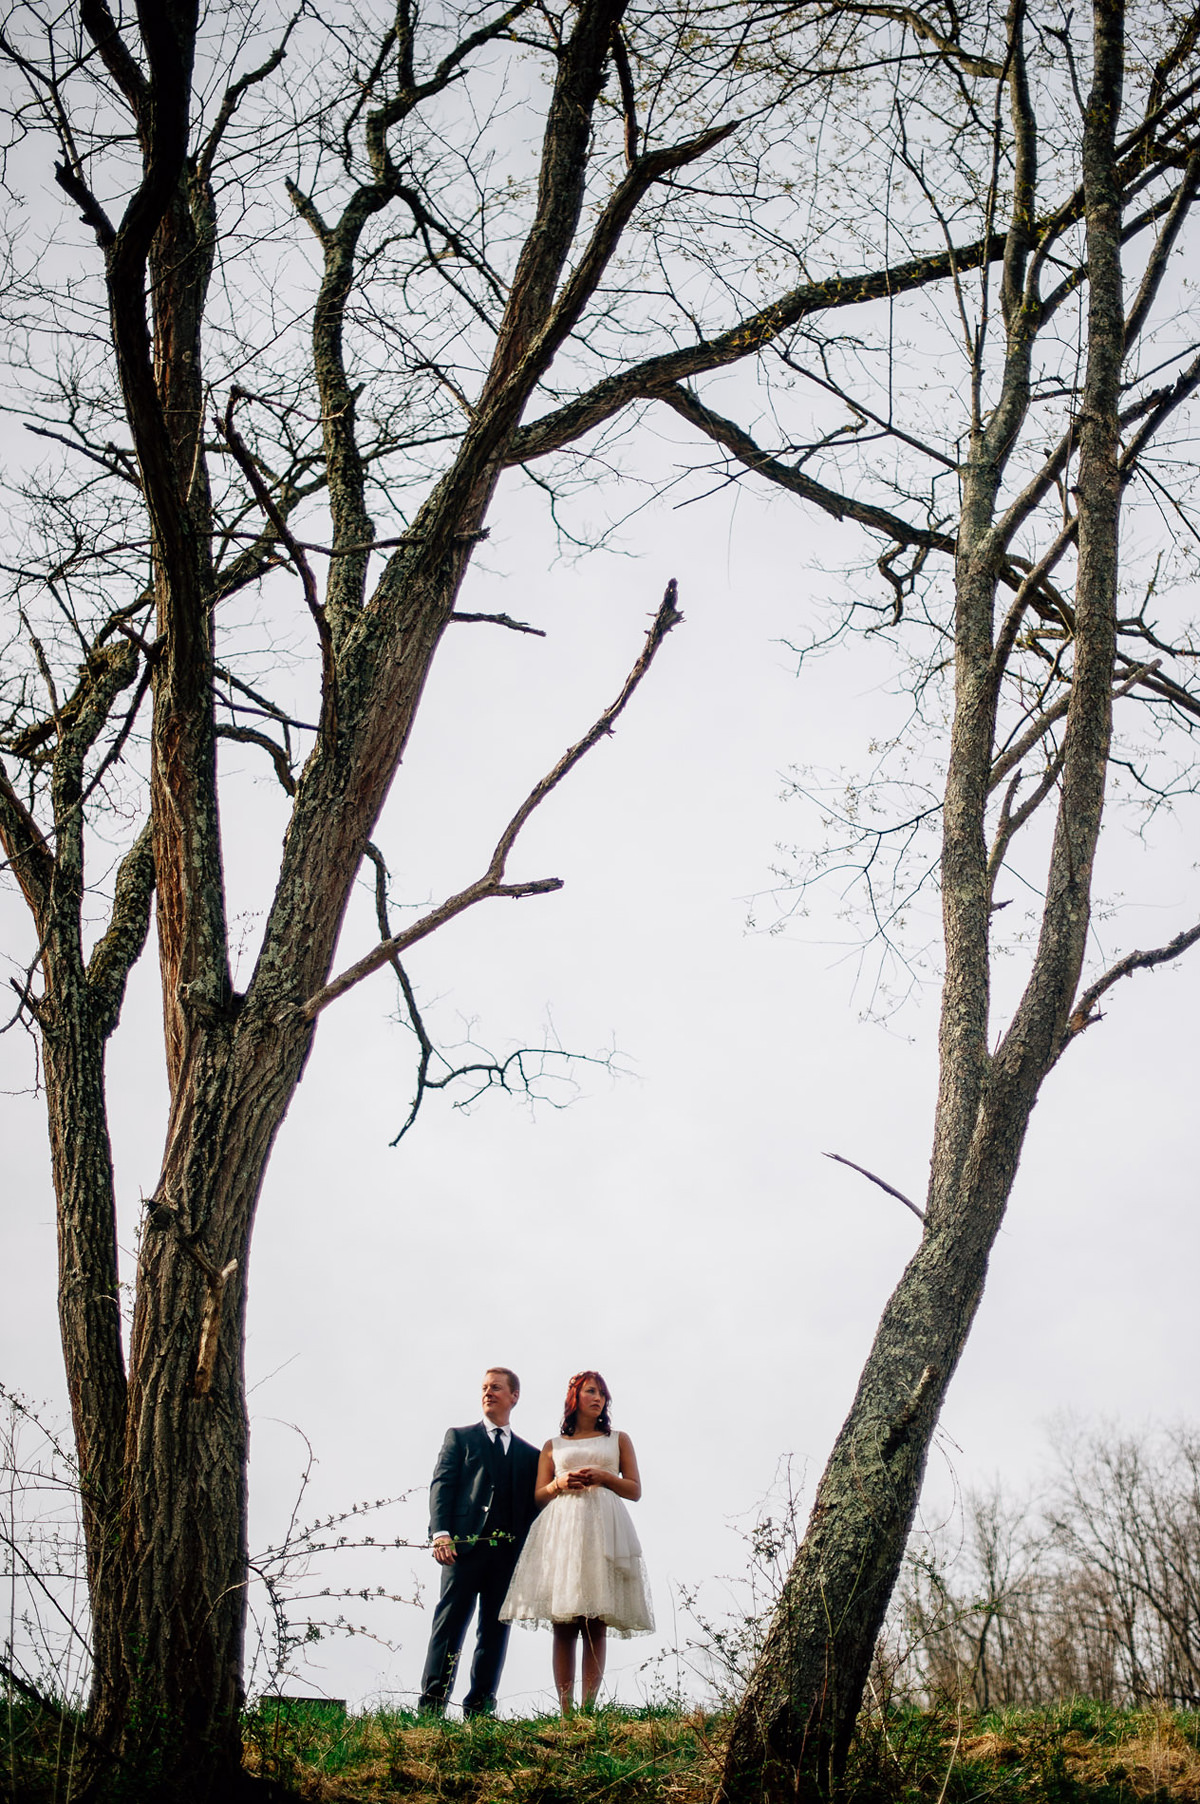 artistic wedding portraits in early spring